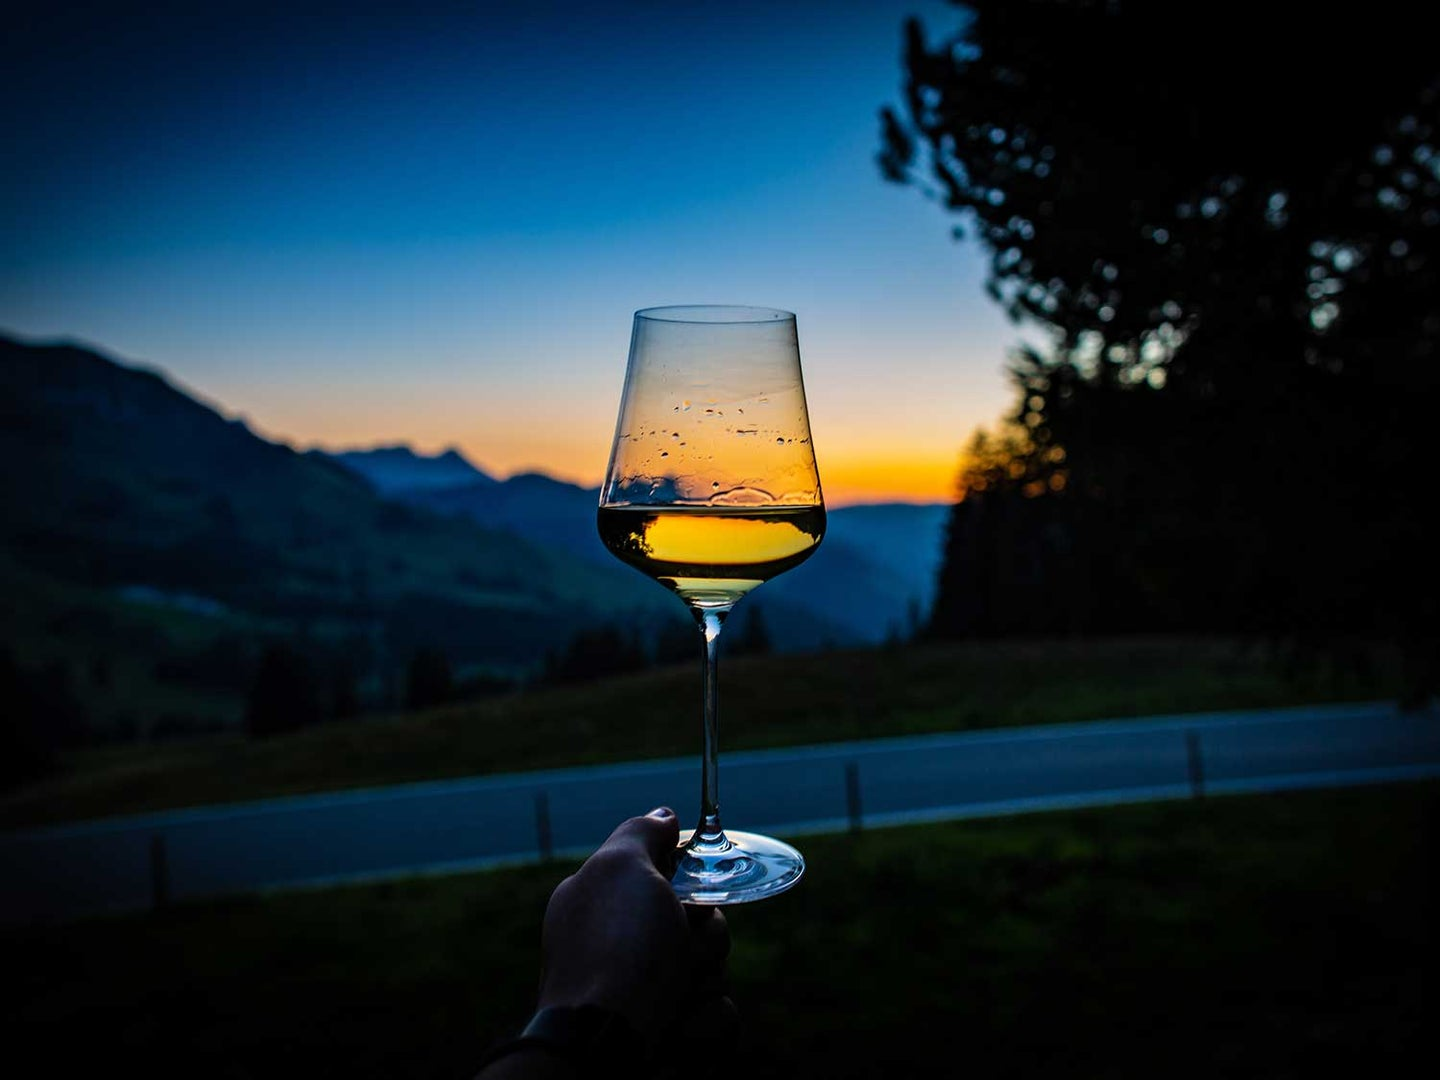 Glass of wine in front of sunset in mountains.